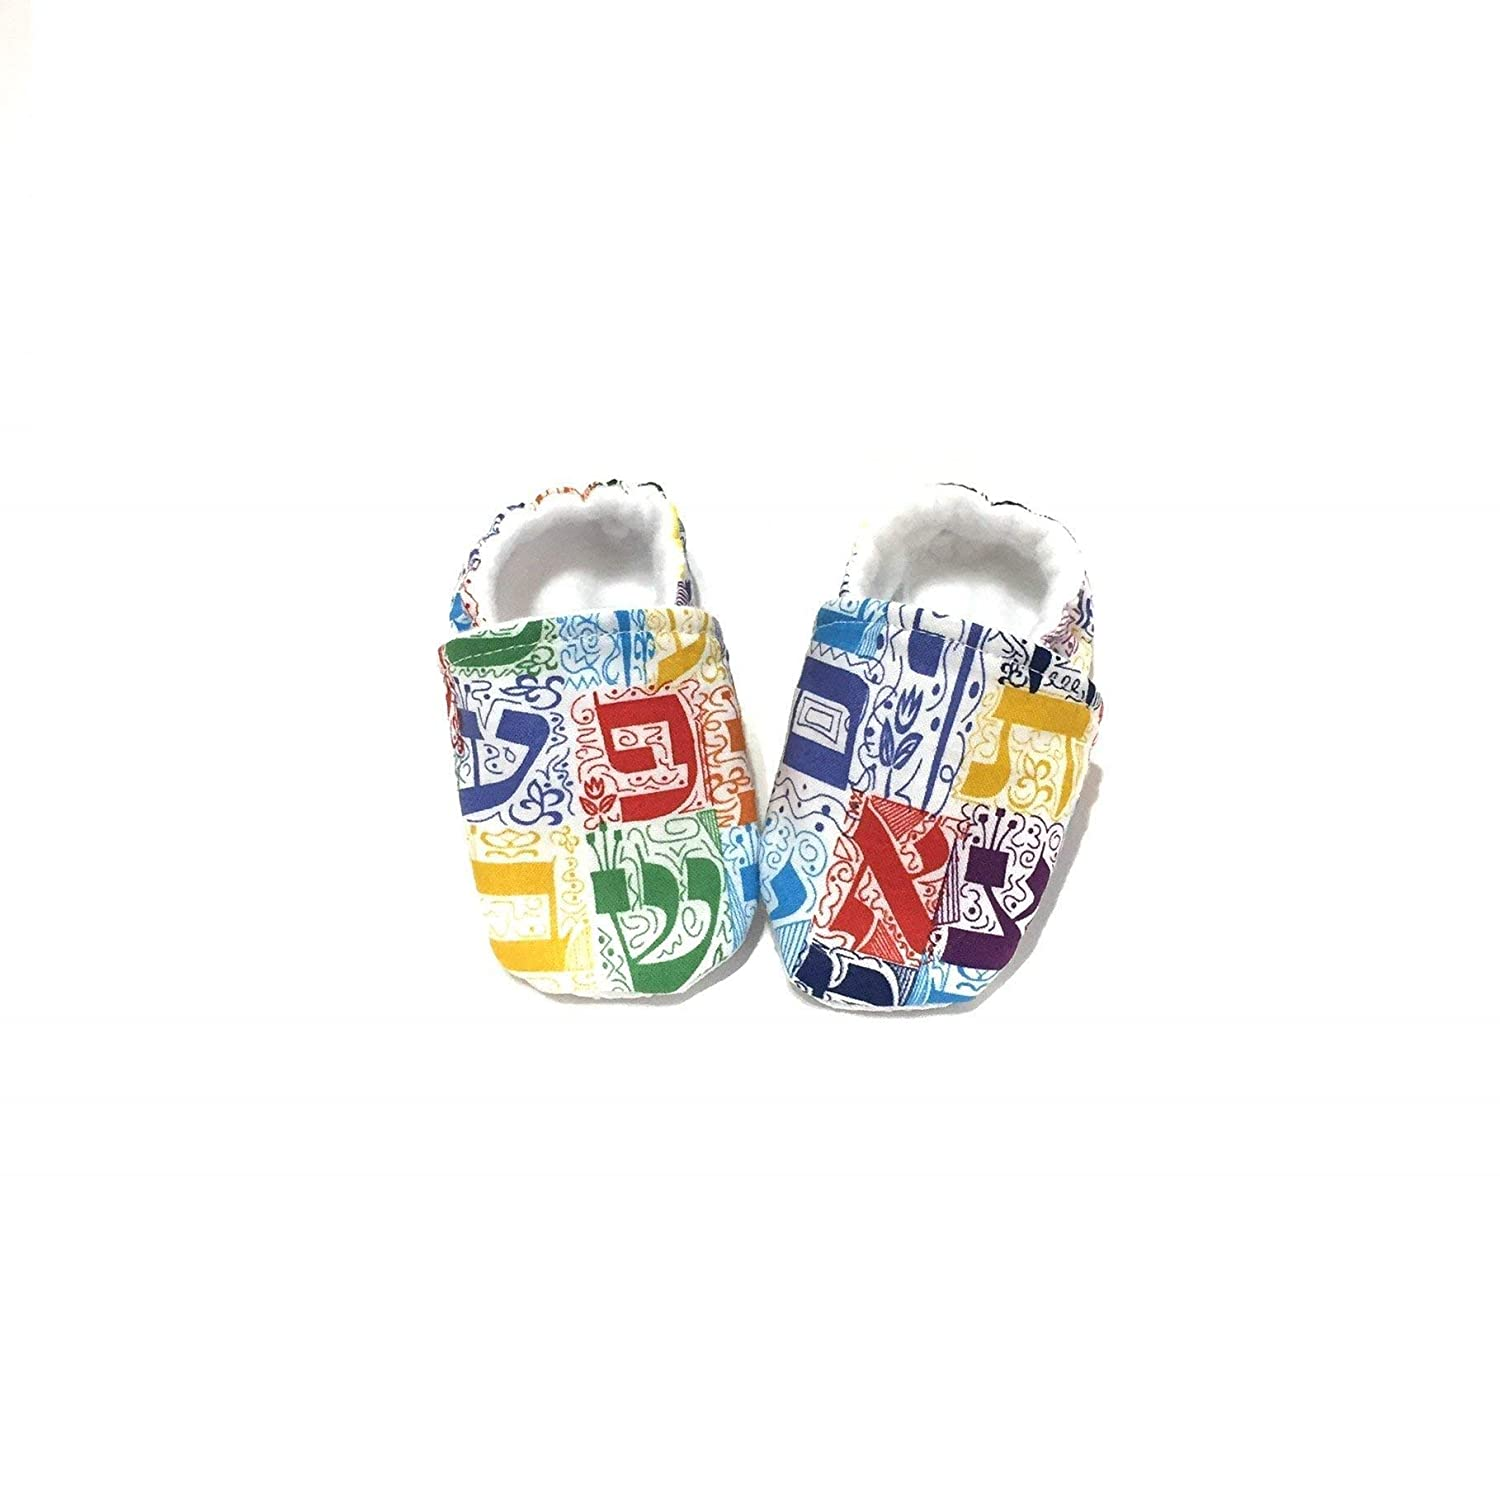 Soft Baby Shoes Hebrew Alphabet Baby Shoes White Baby Booties Hebrew Baby Gift Baby Naming Gift JEWISH BABY SHOES Jewish Newborn Gift New Baby Gift